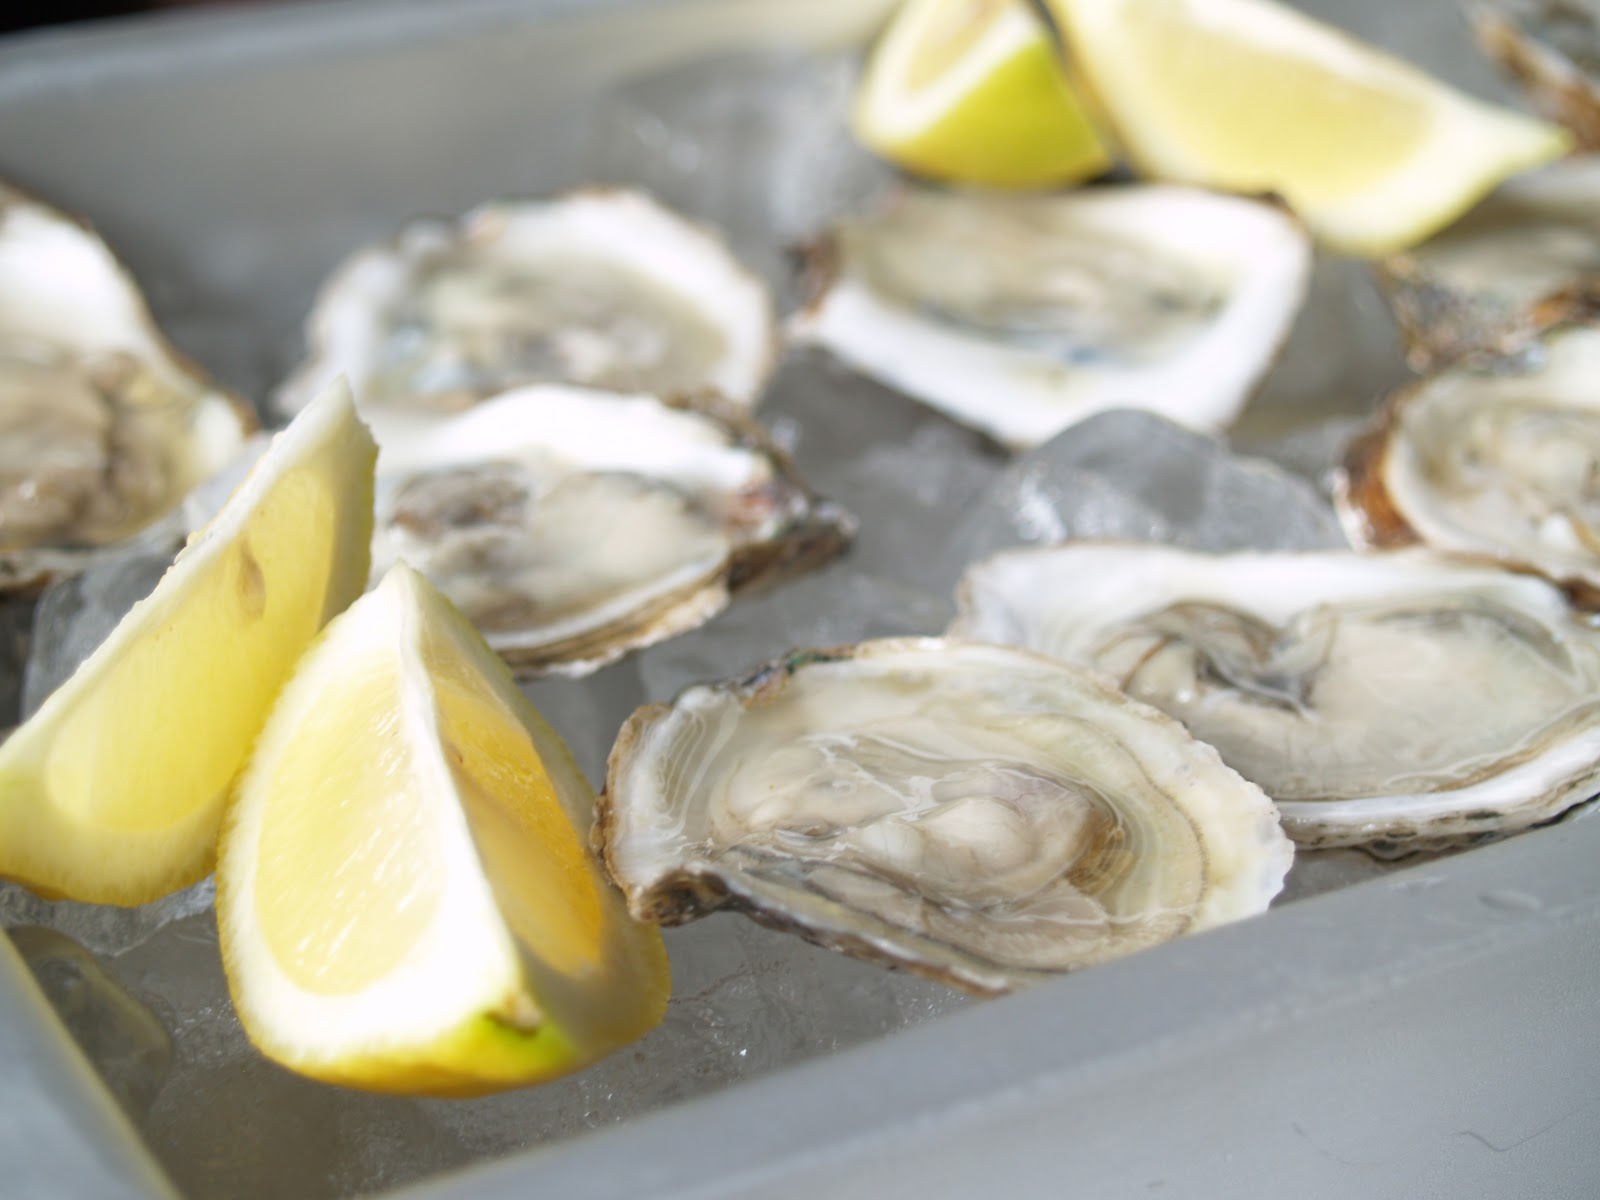 Persimmon and Peach: Oysters with Mignonette Sauce